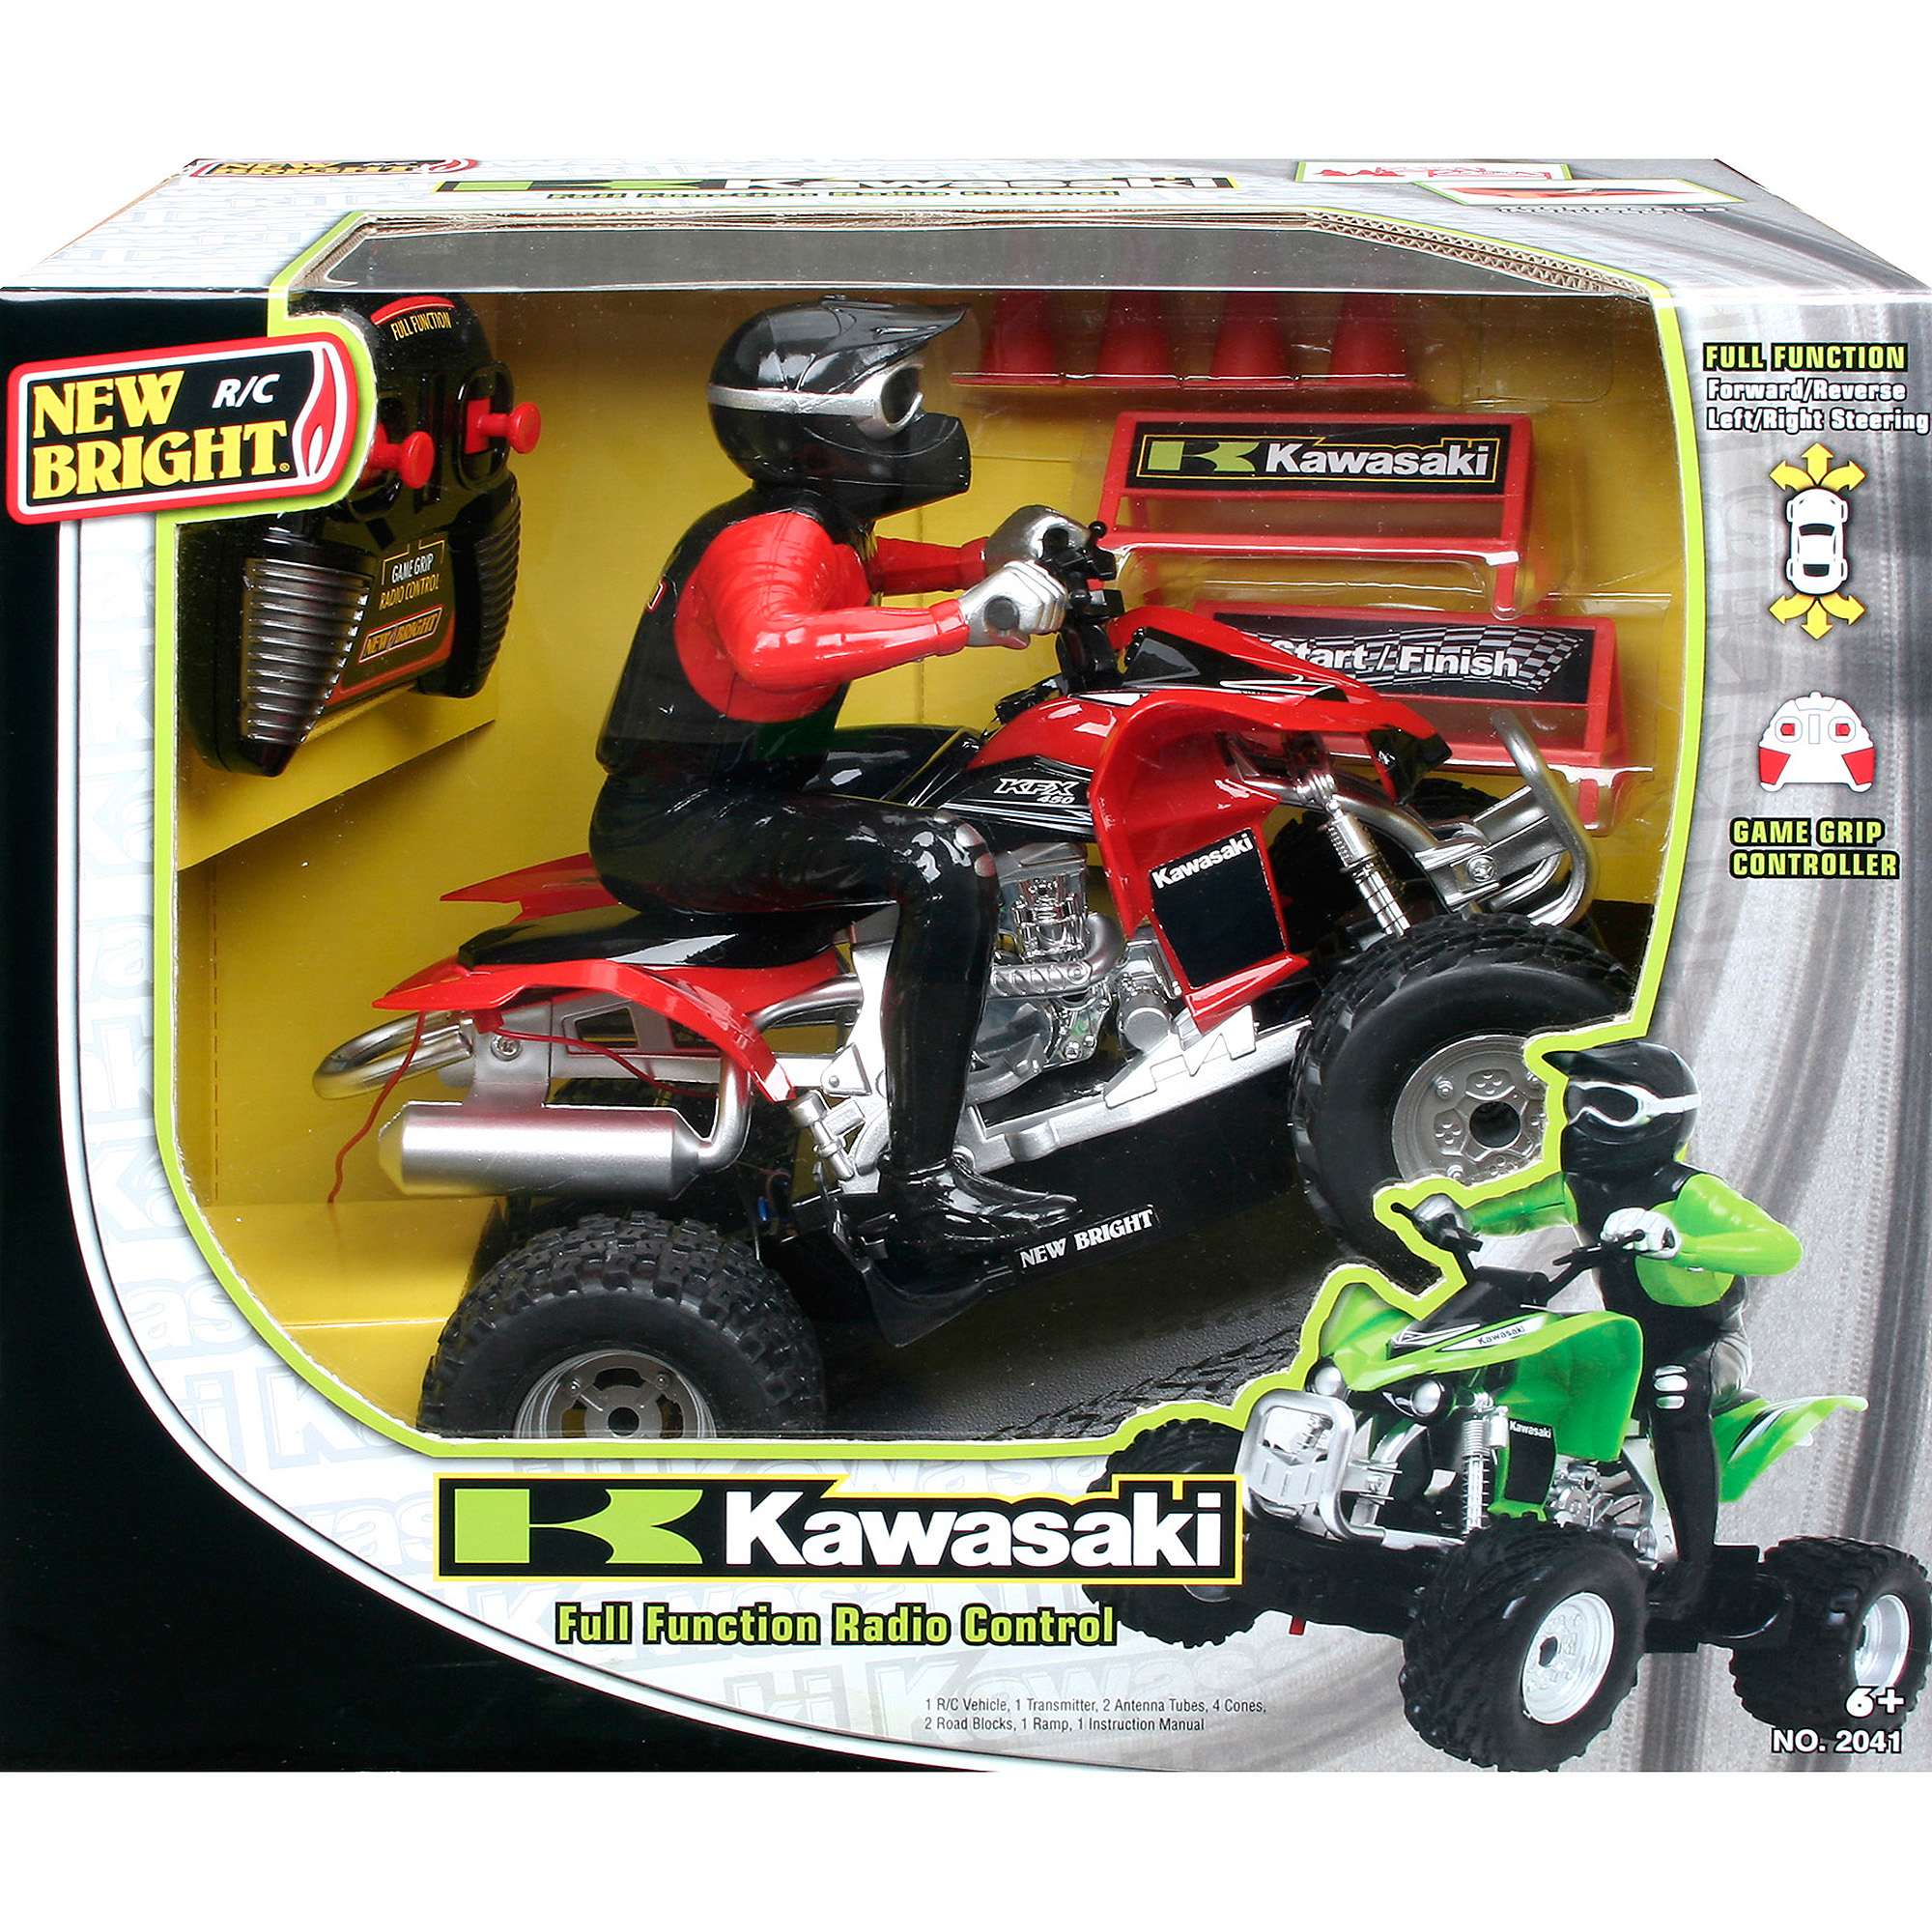 New Bright 1:20 R/C Kawasaki KFX 450 with Rider, Red